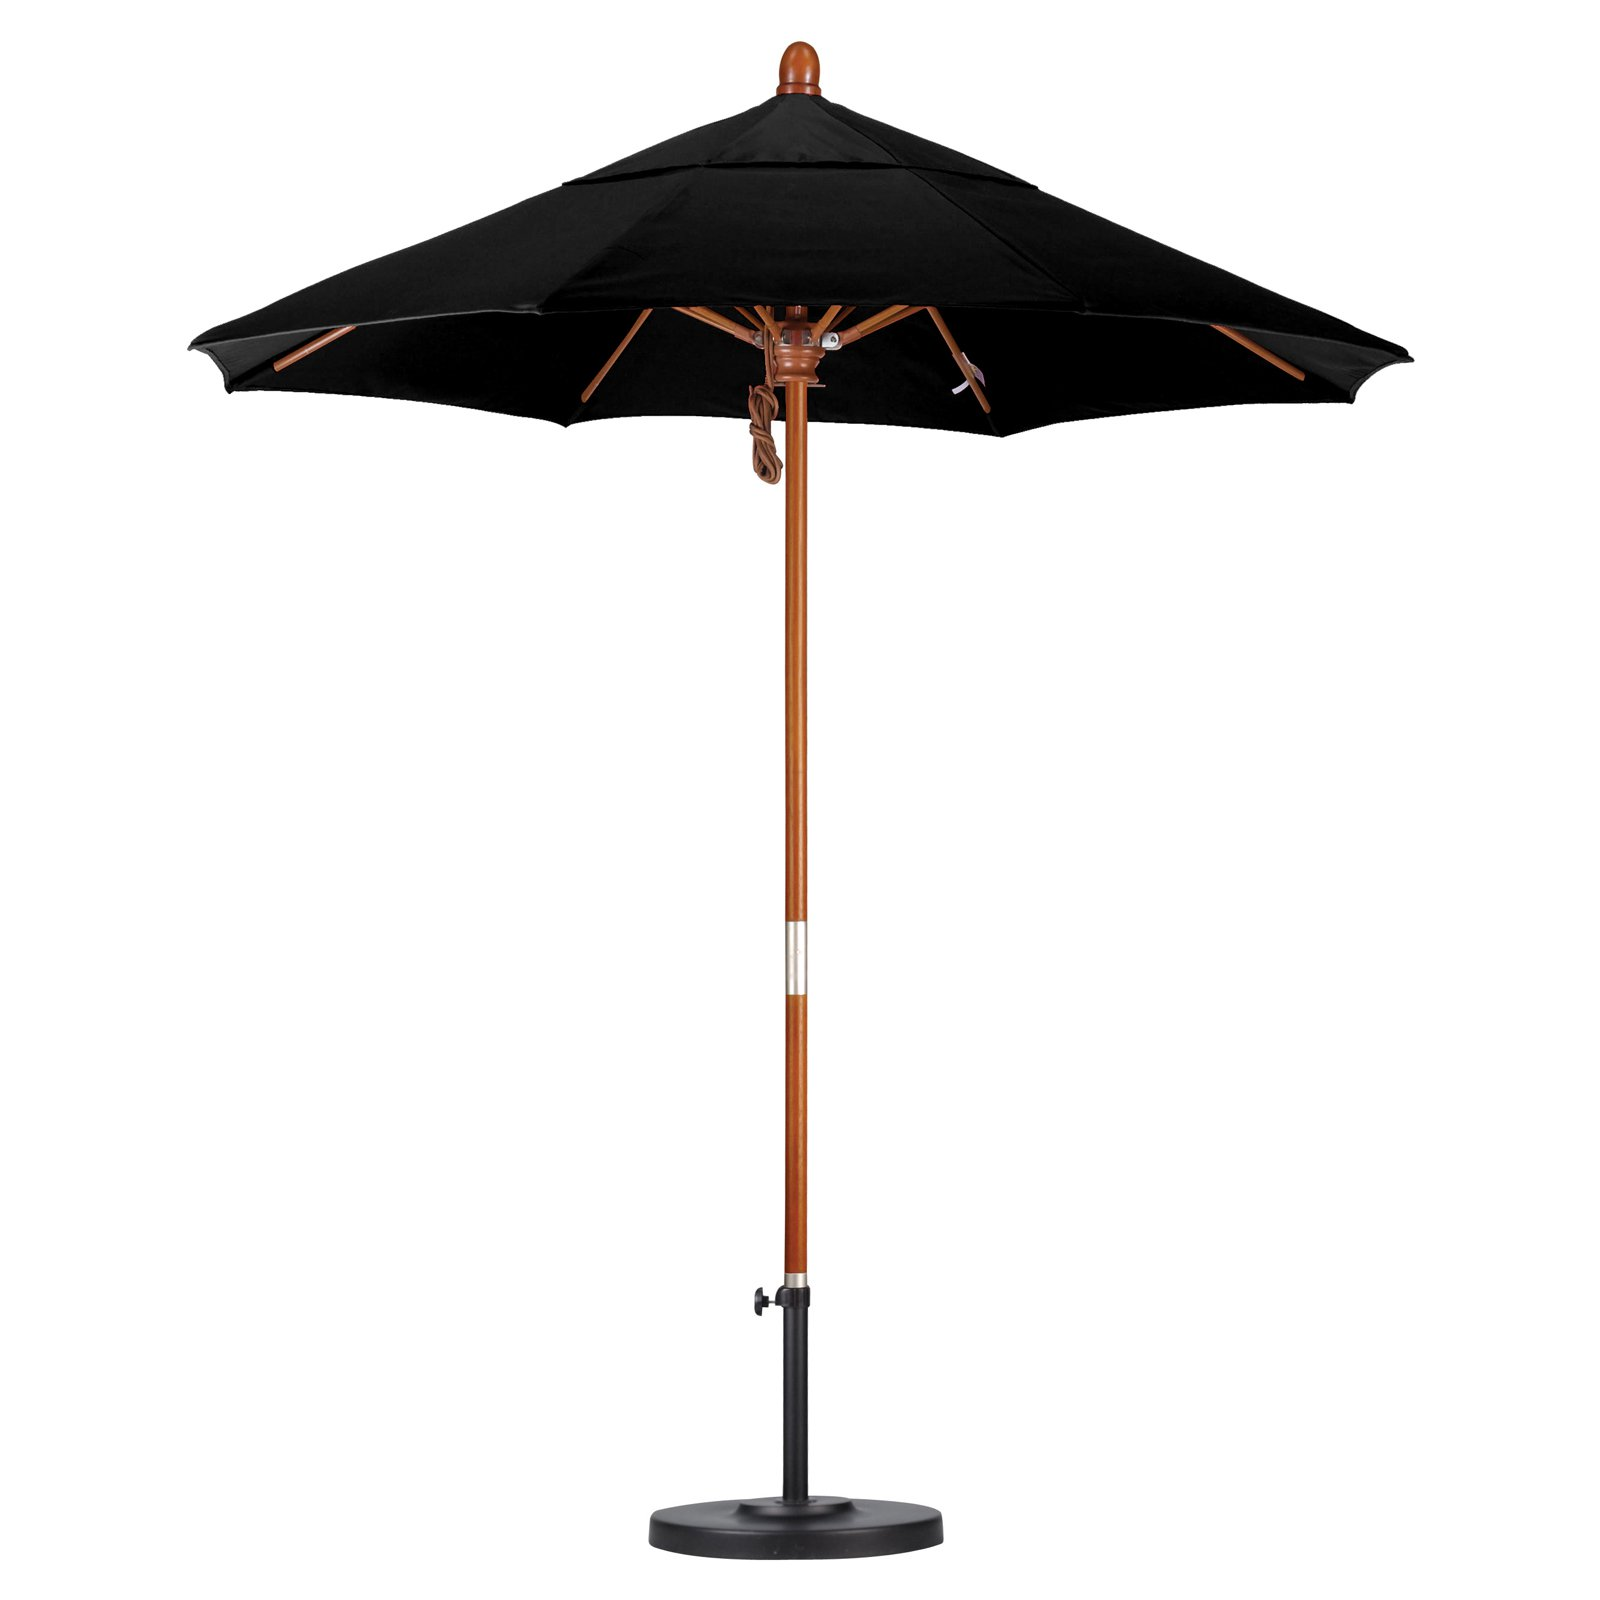 7.5 ft. Wood Market Umbrella (Olefin Red)